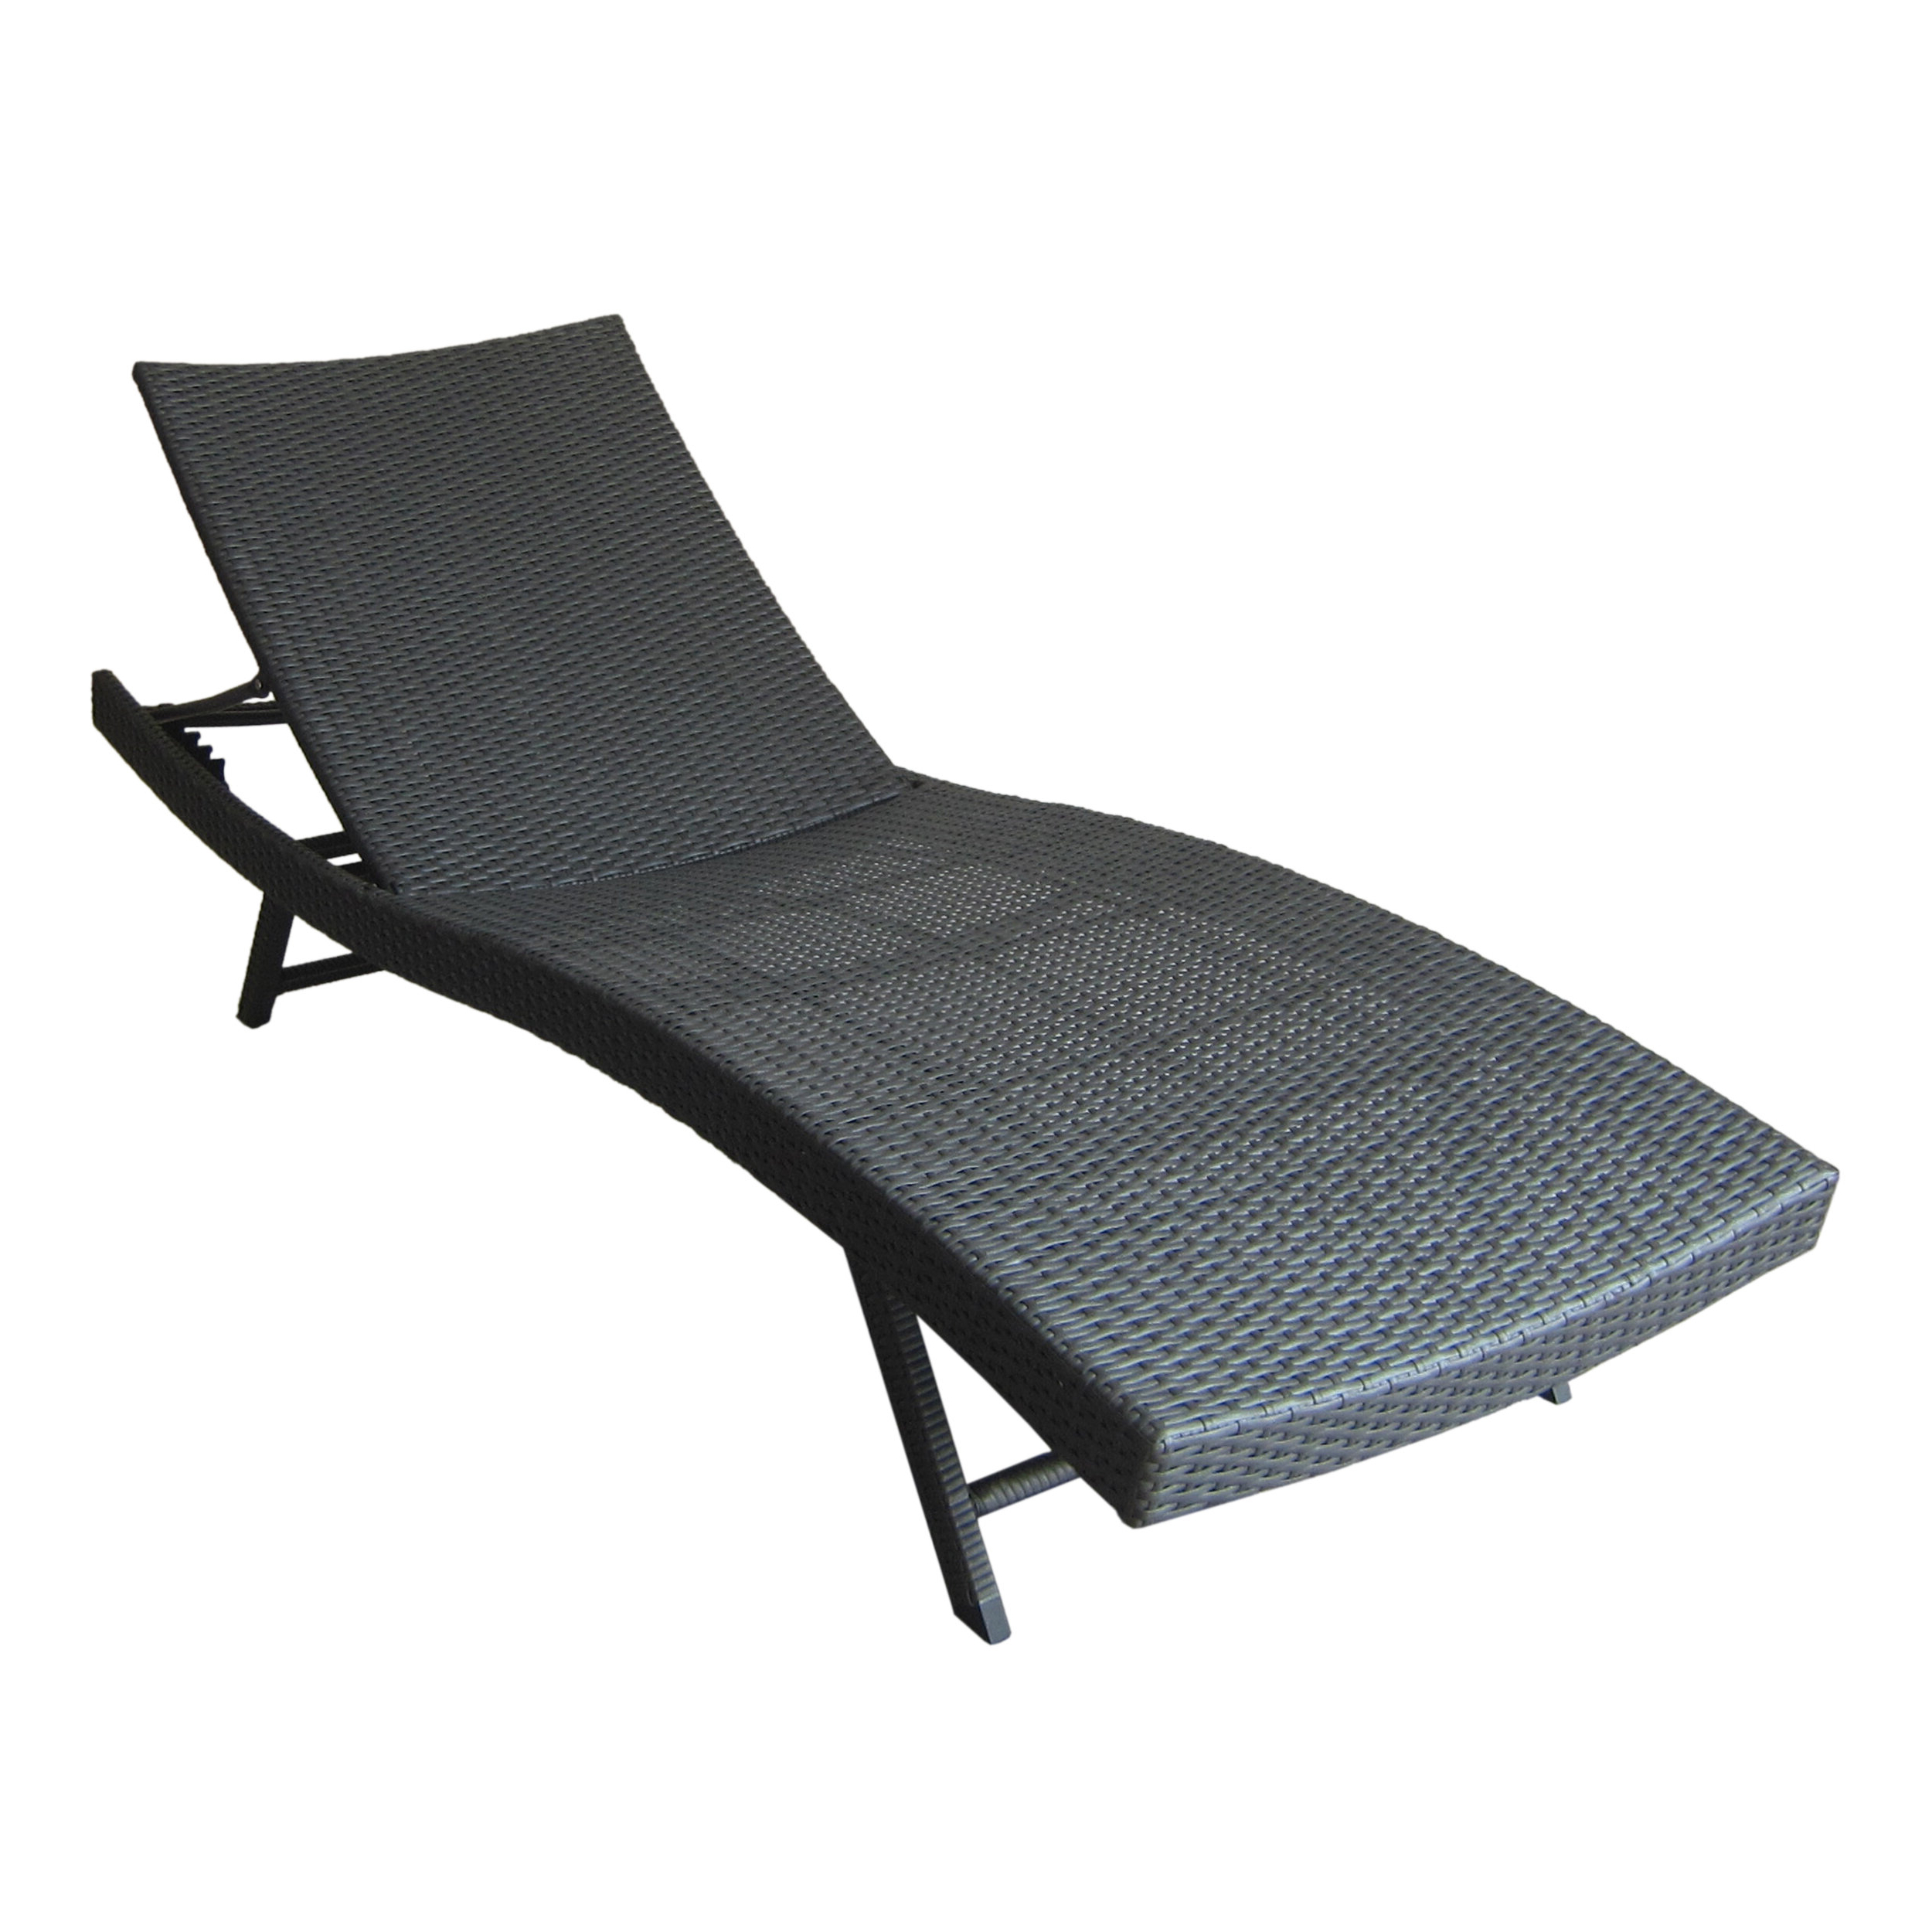 Gerson Outdoor Wicker Reclining Chaise Lounge In Recent All Weather Single Outdoor Adjustable Loungers (View 14 of 25)